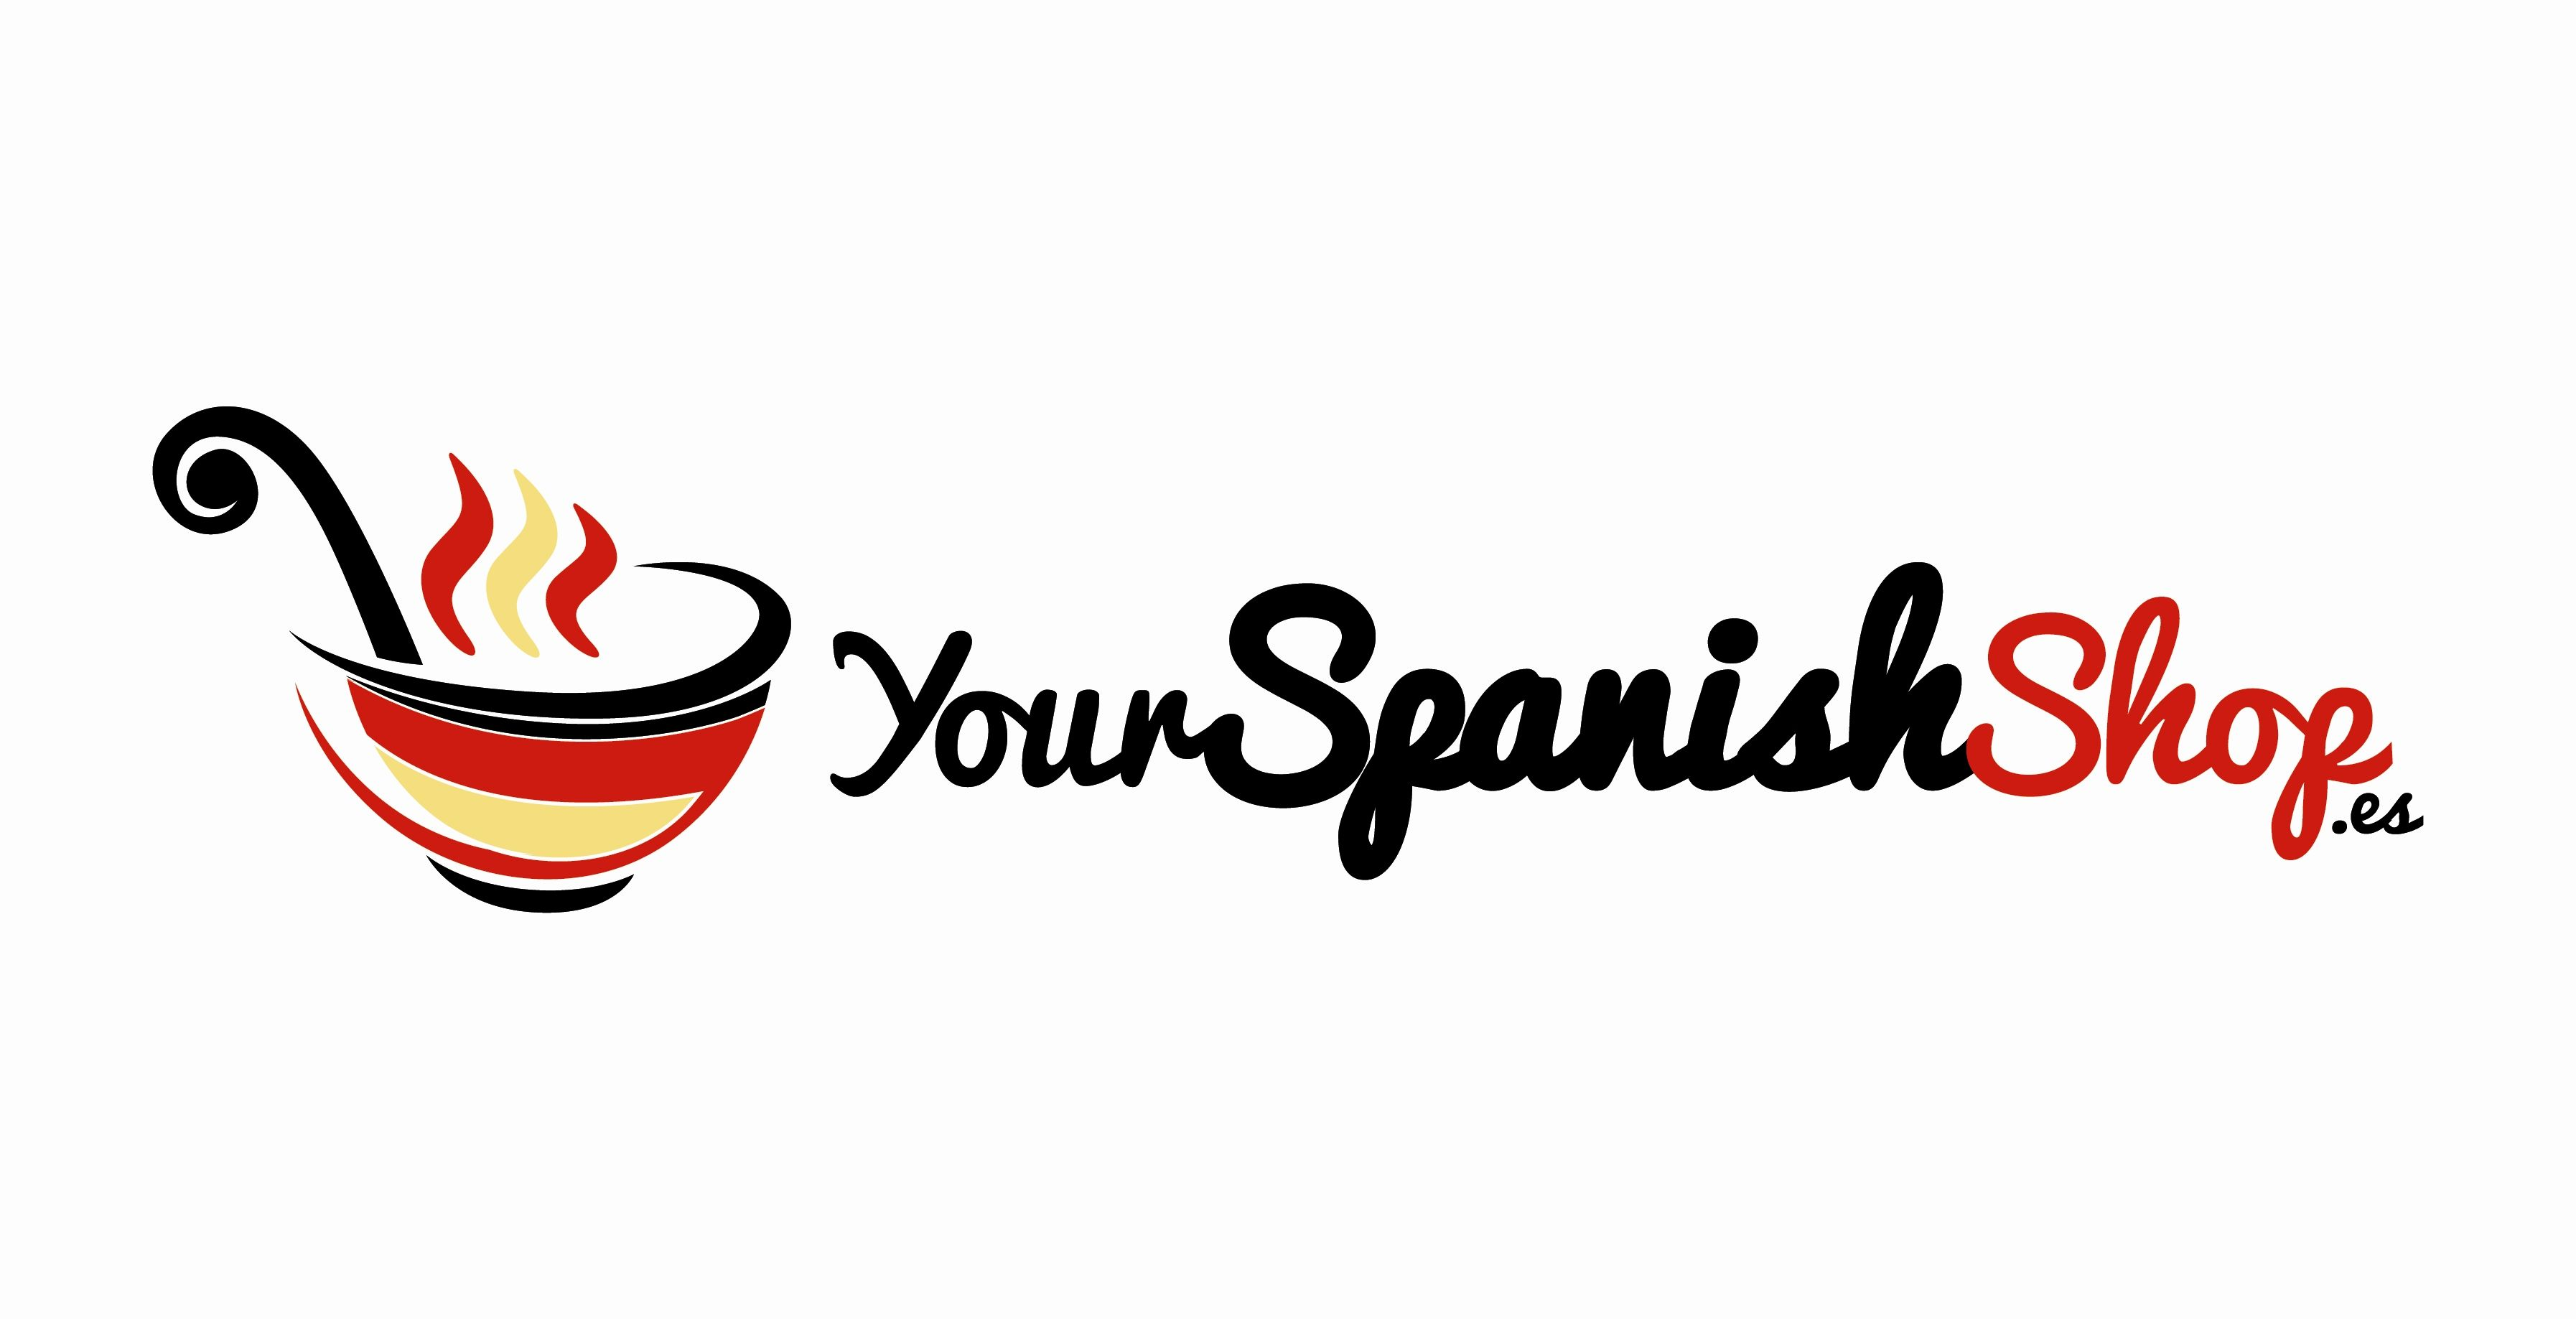 YourSpanishShop